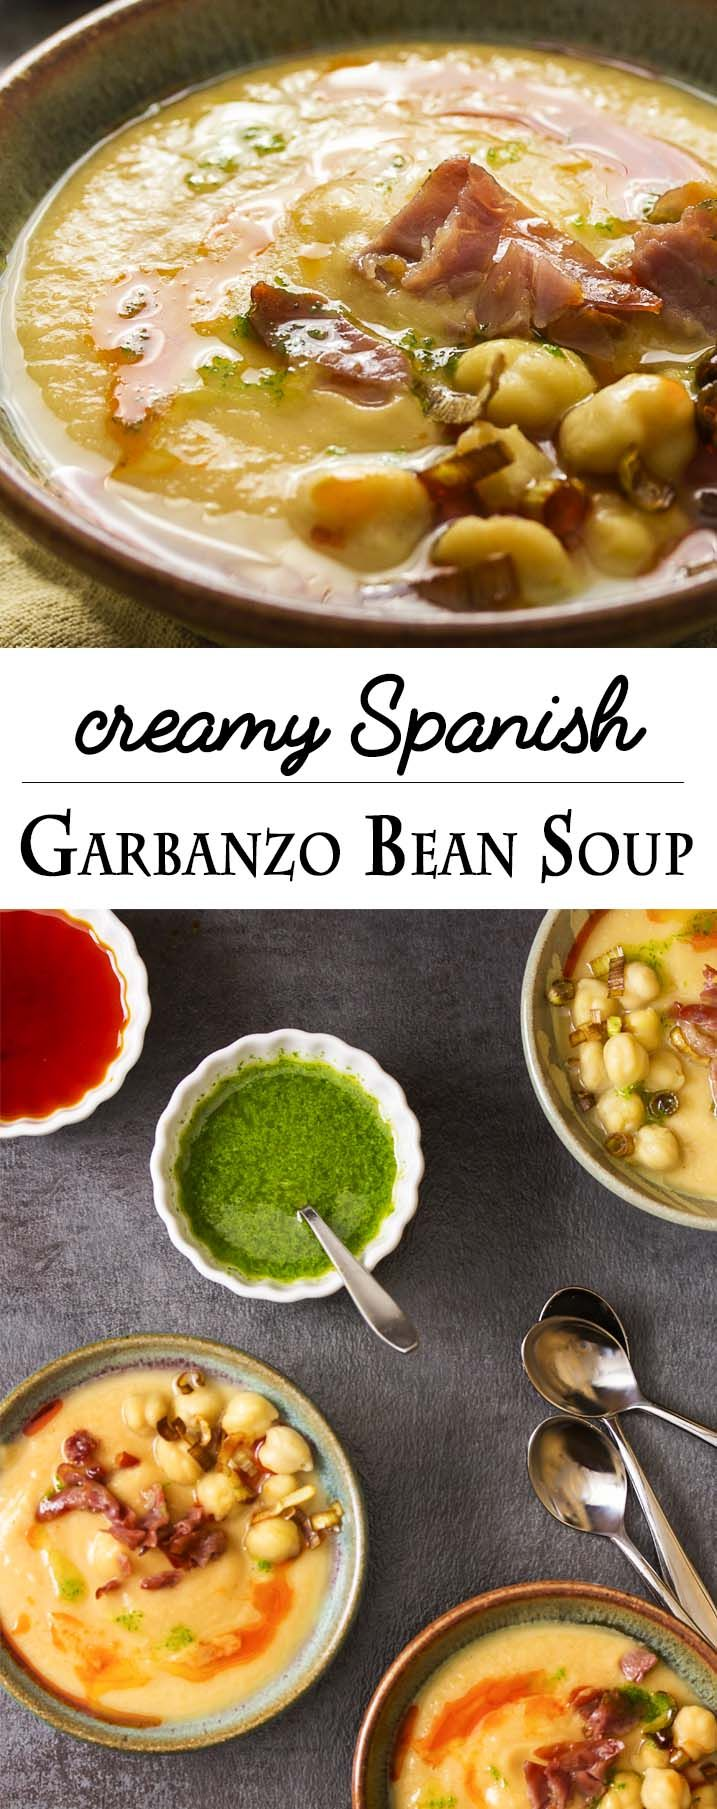 Looking for a simple and elegant soup? You'll love this Spanish garbanzo bean soup made from canned chickpeas and pureed until it's silky smooth. | justalittlebitofbacon.com